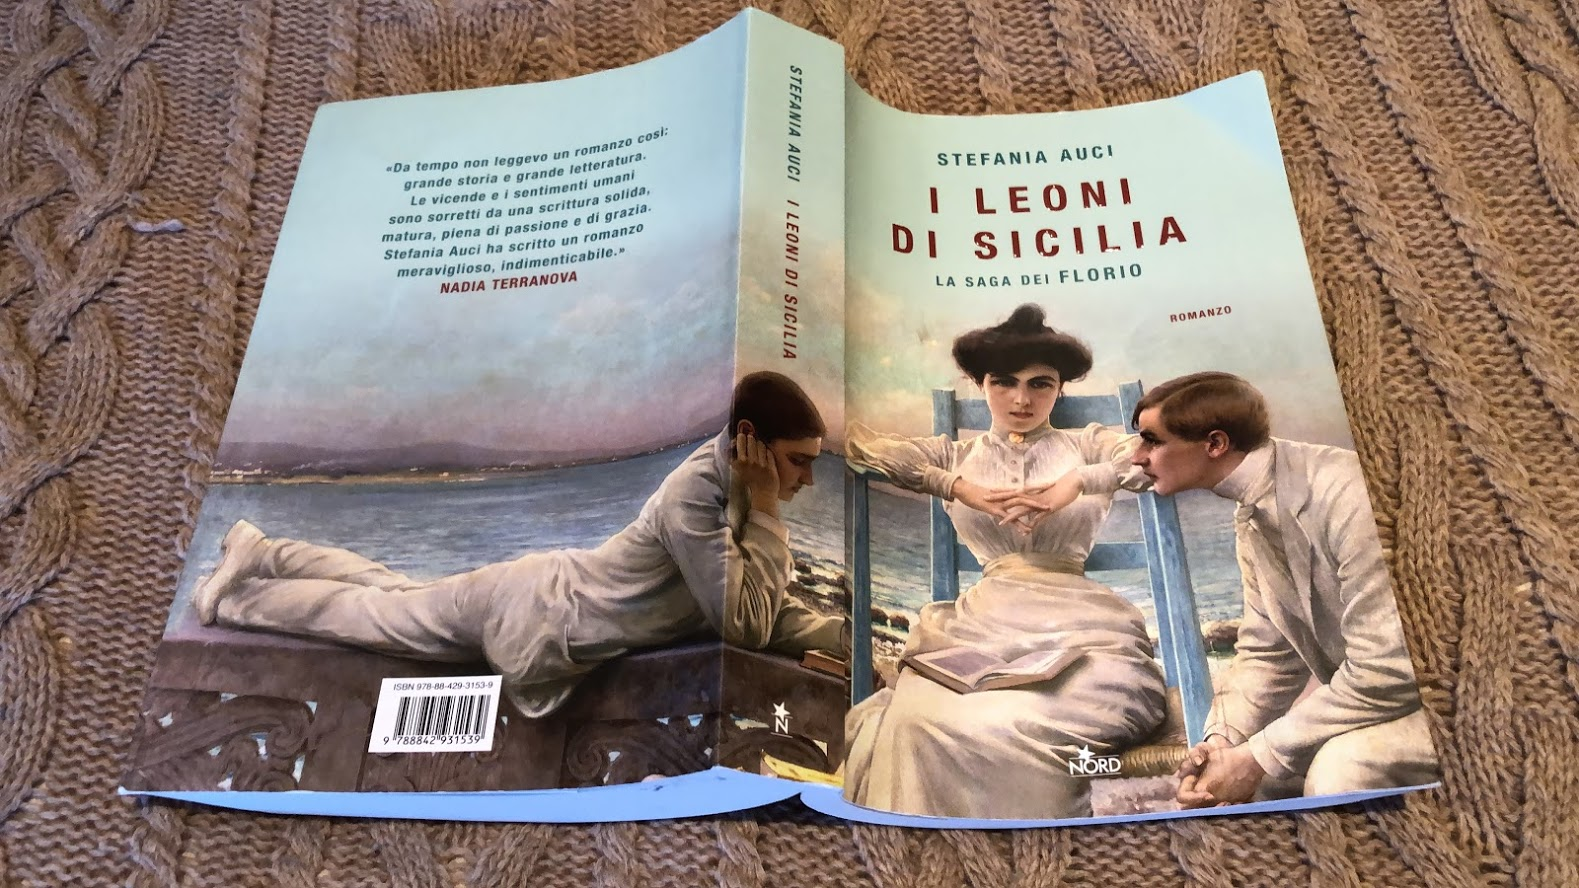 Sicily - I Leoni di Sicilia - A novel by Stefania Auci - best read by far for me in recent months. www.educated-traveller.com